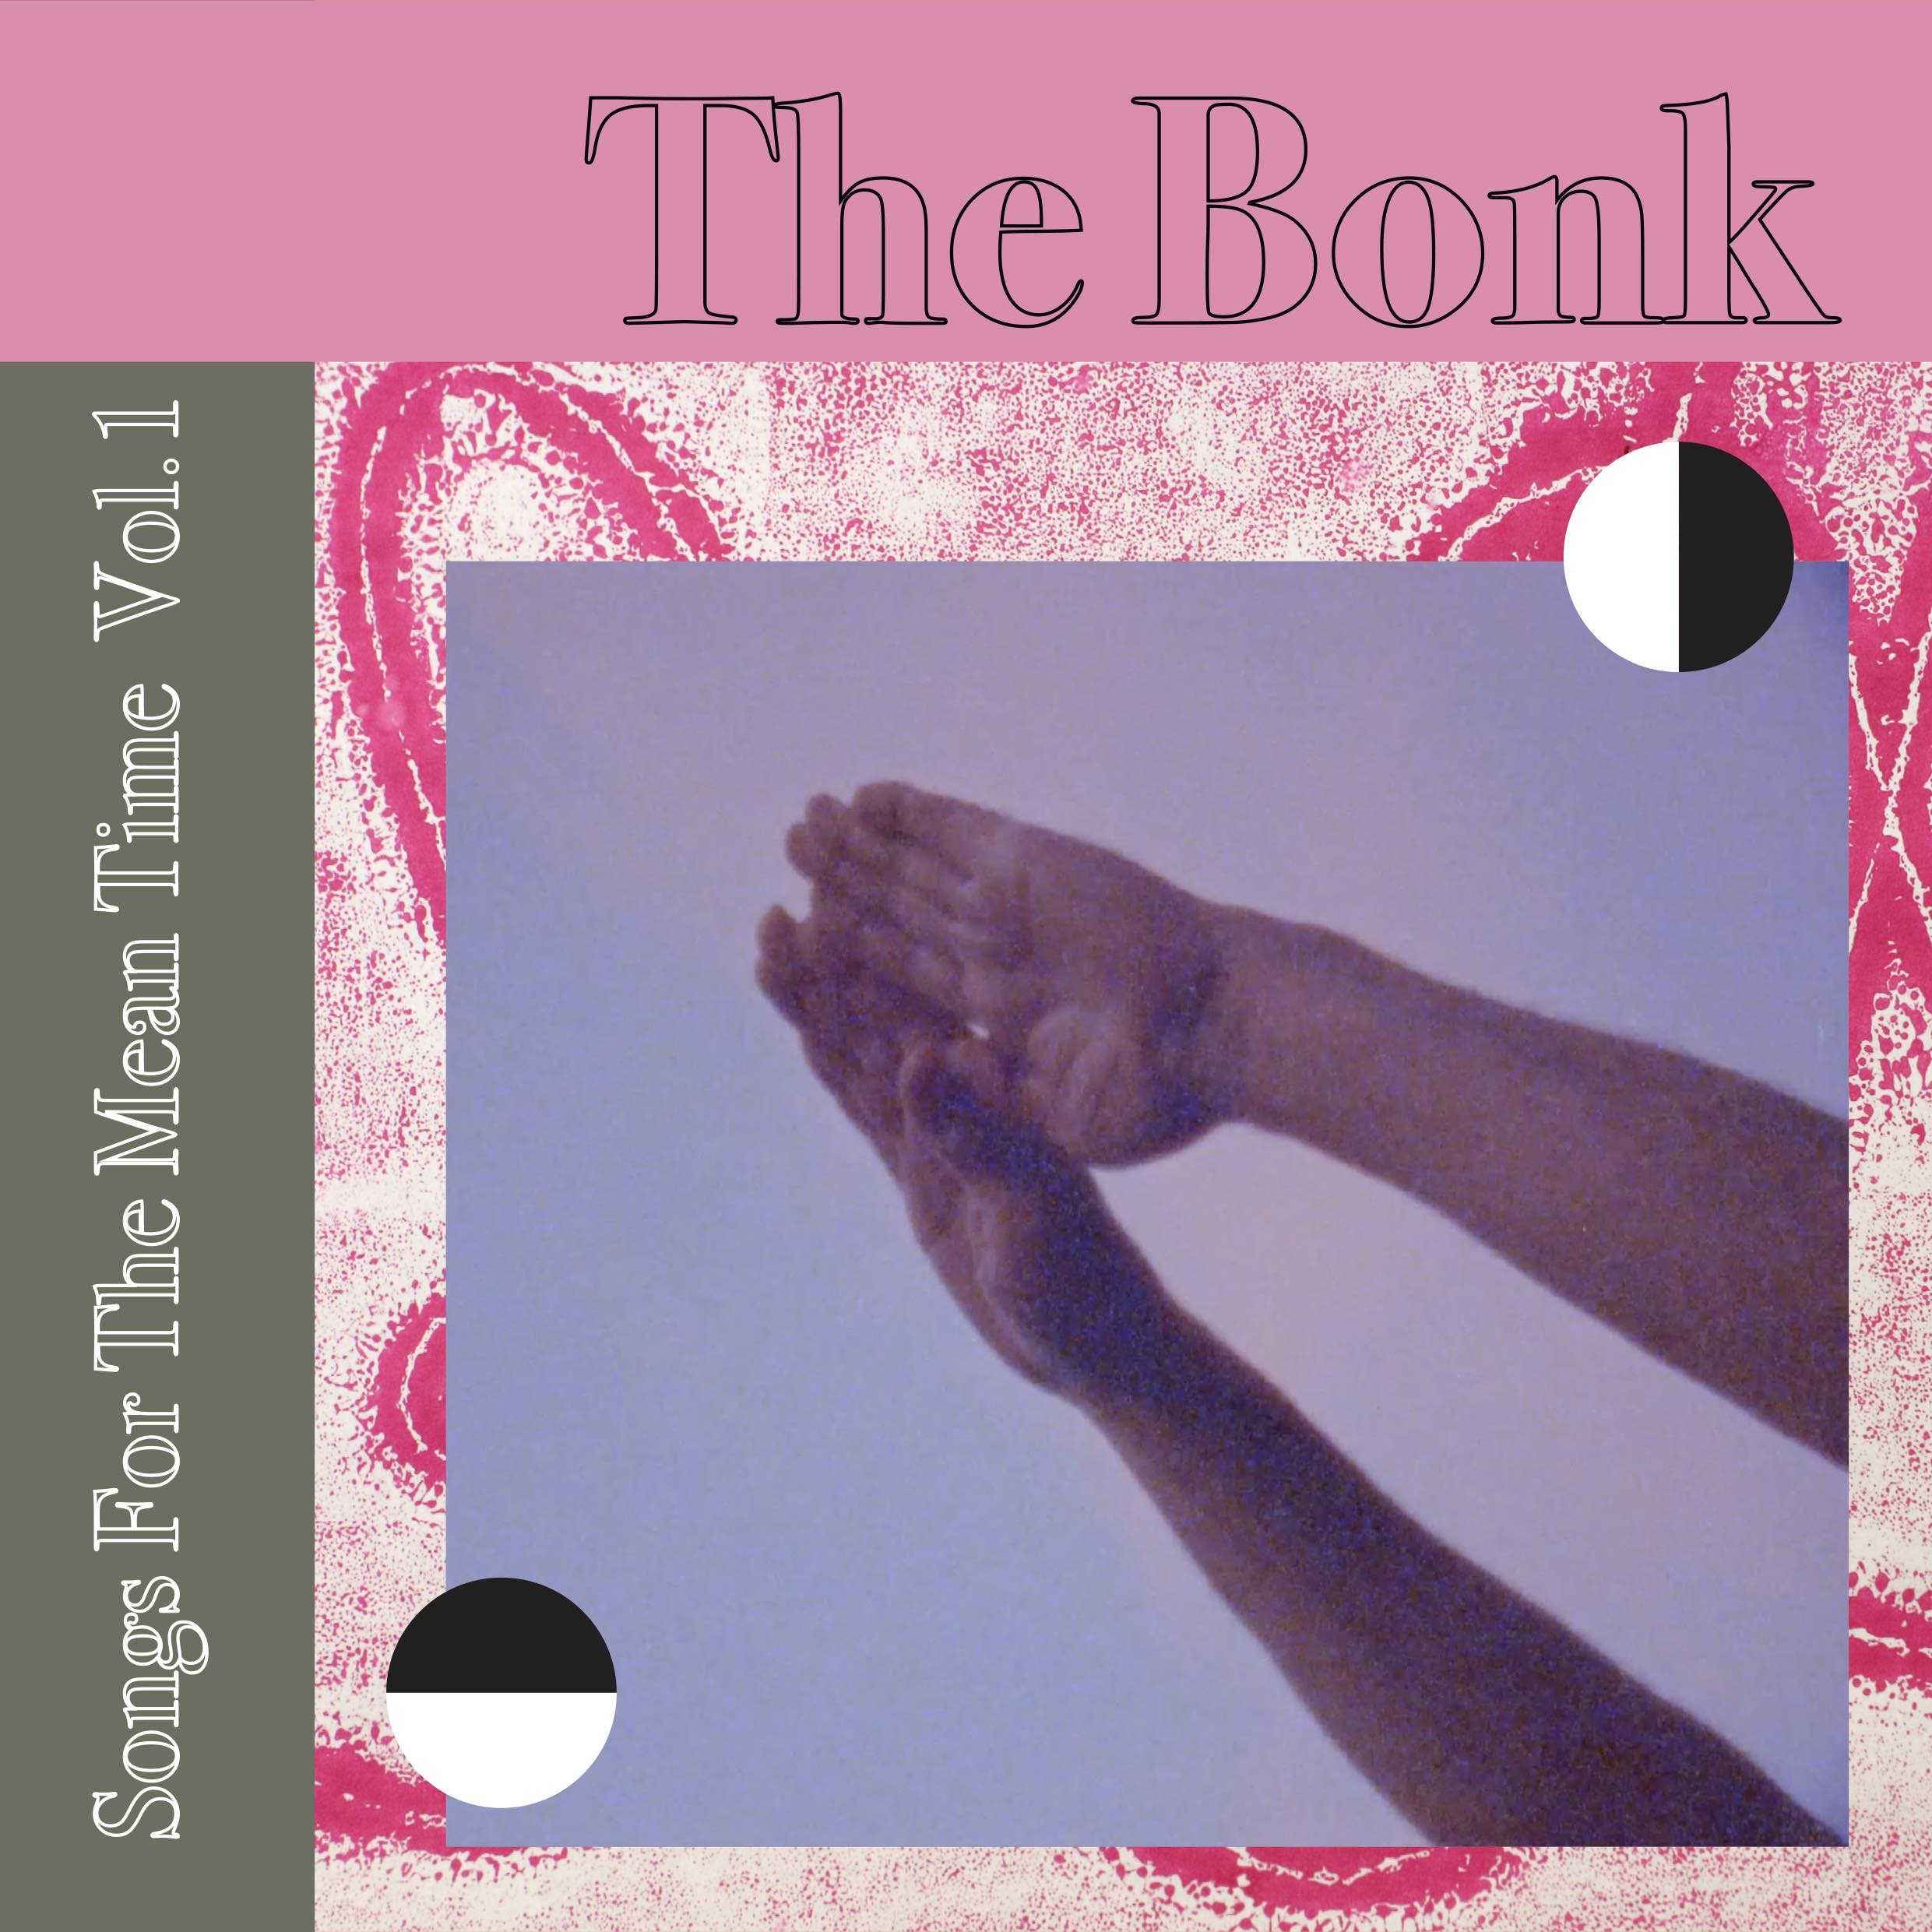 Songs For The Mean Time Vol. 1 by The Bonk.